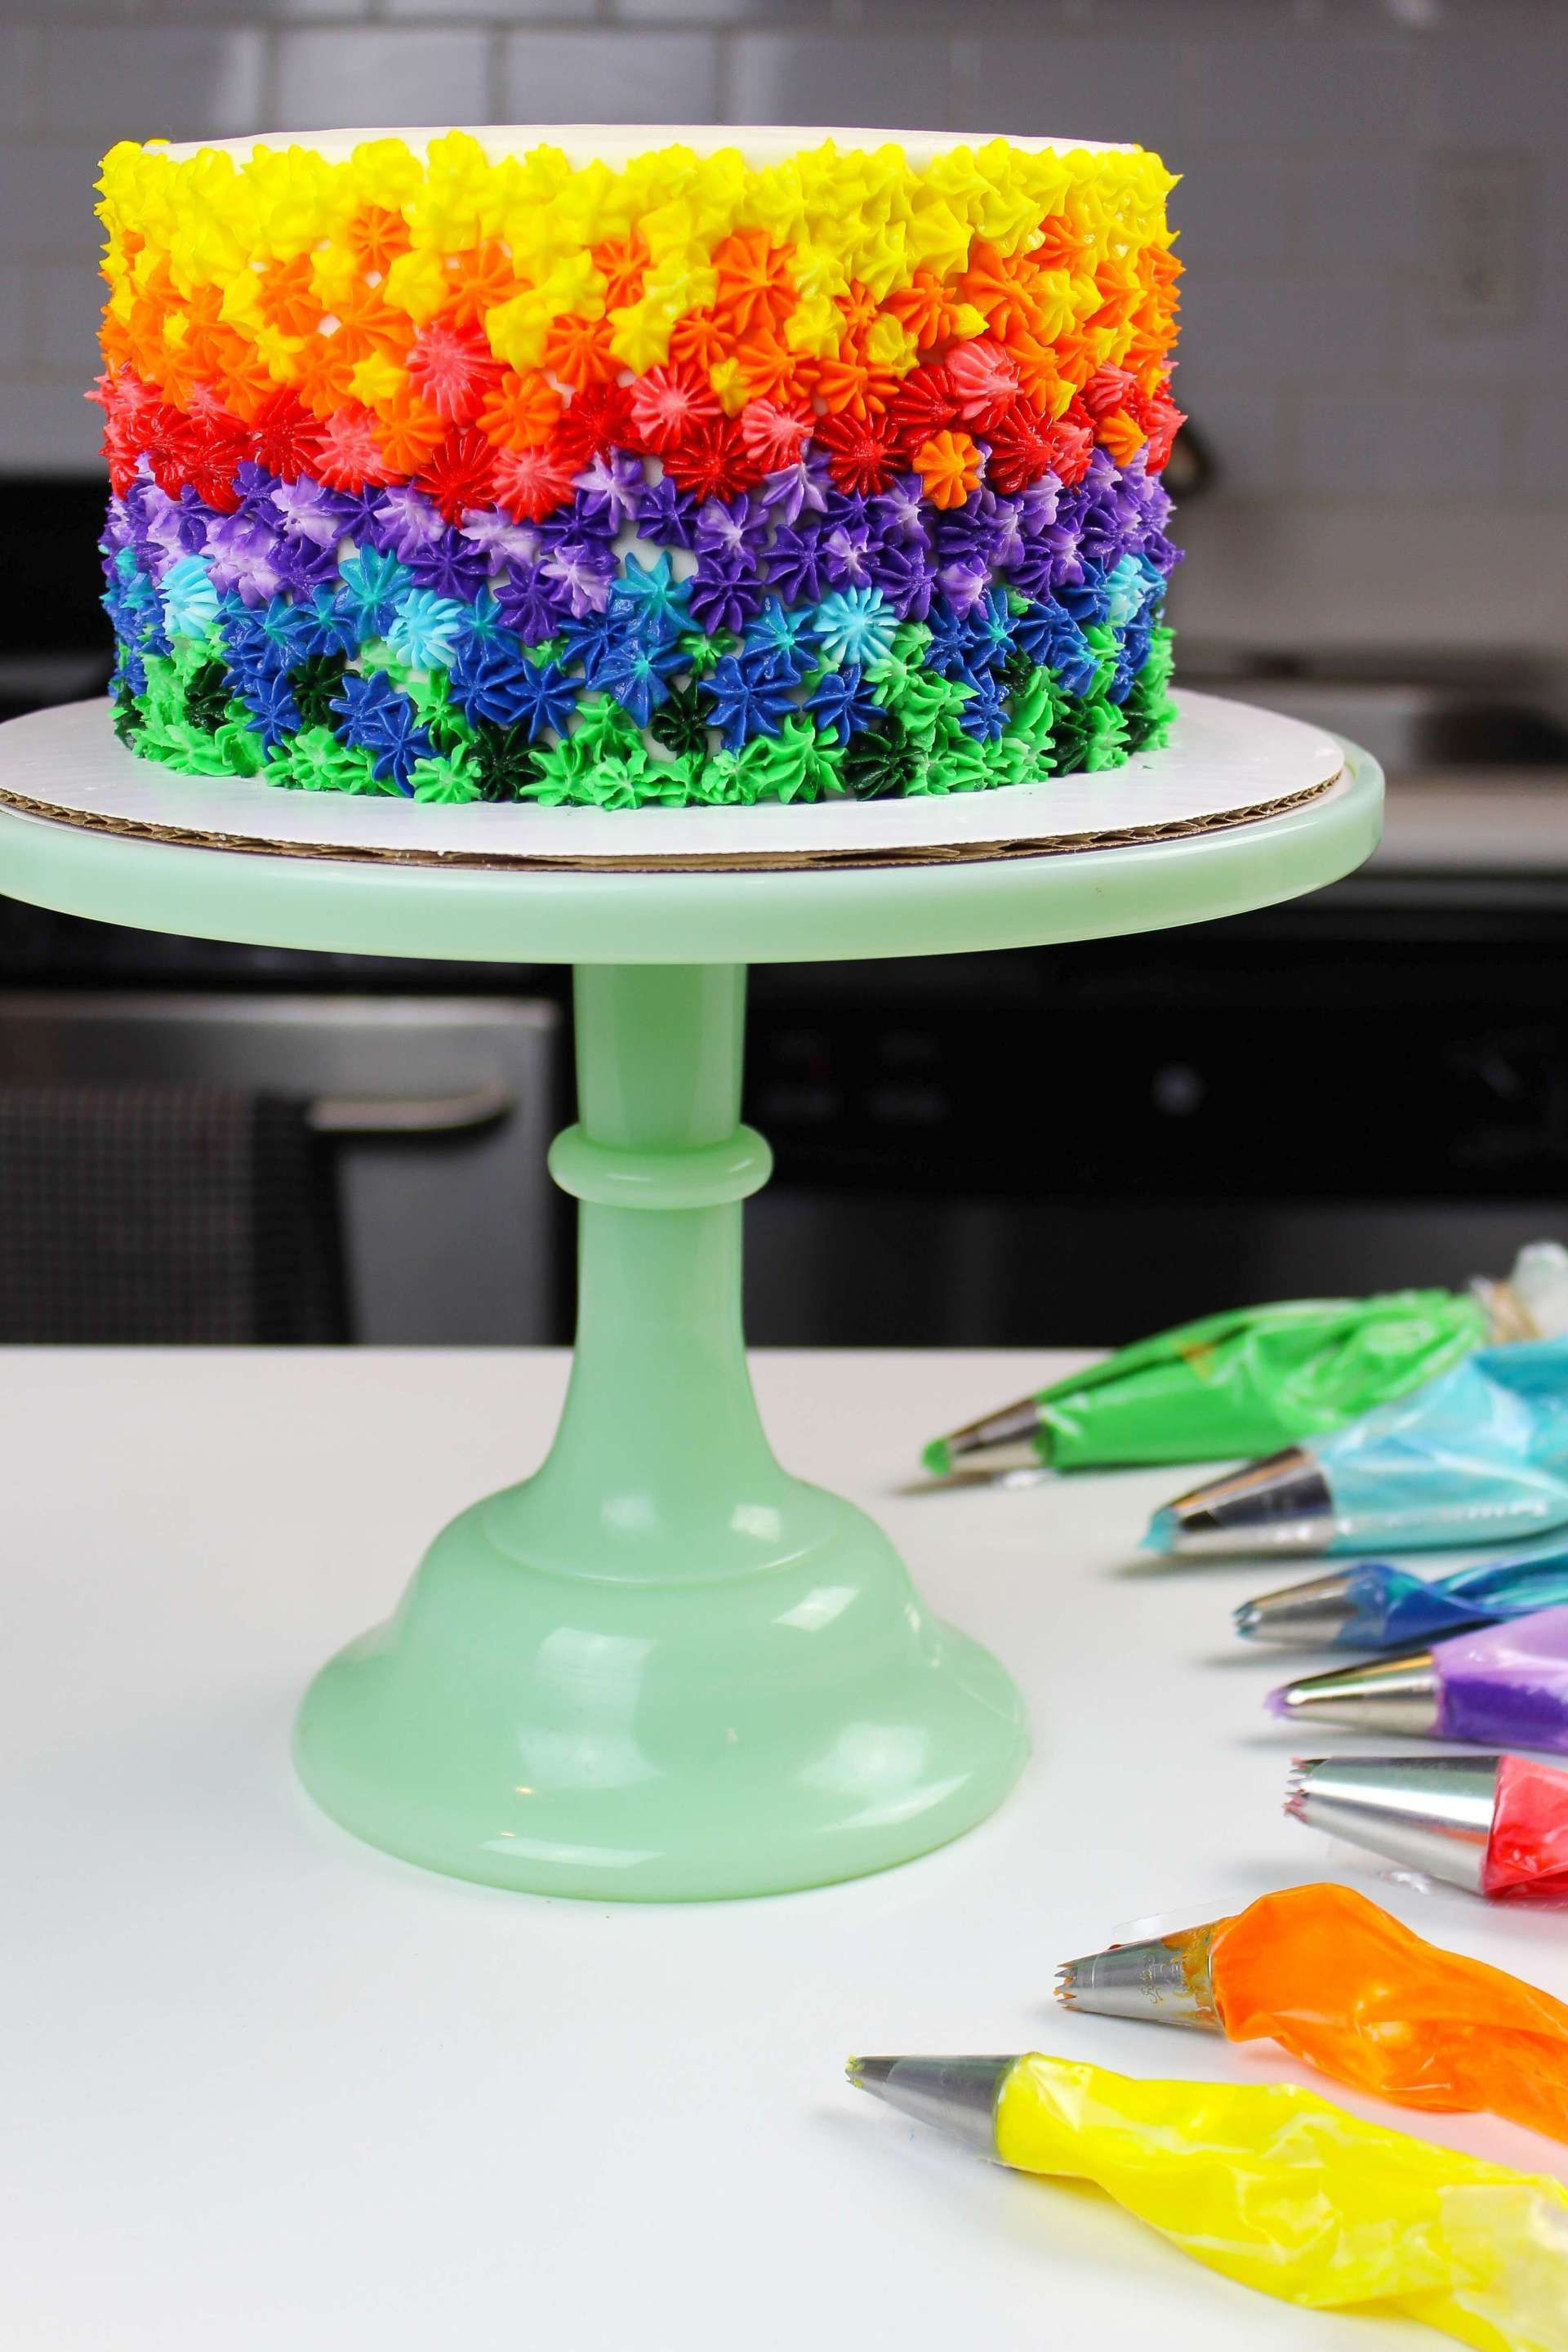 Awe Inspiring Rainbow Marbled Cake Recipe With Images Marble Cake Recipes Personalised Birthday Cards Petedlily Jamesorg